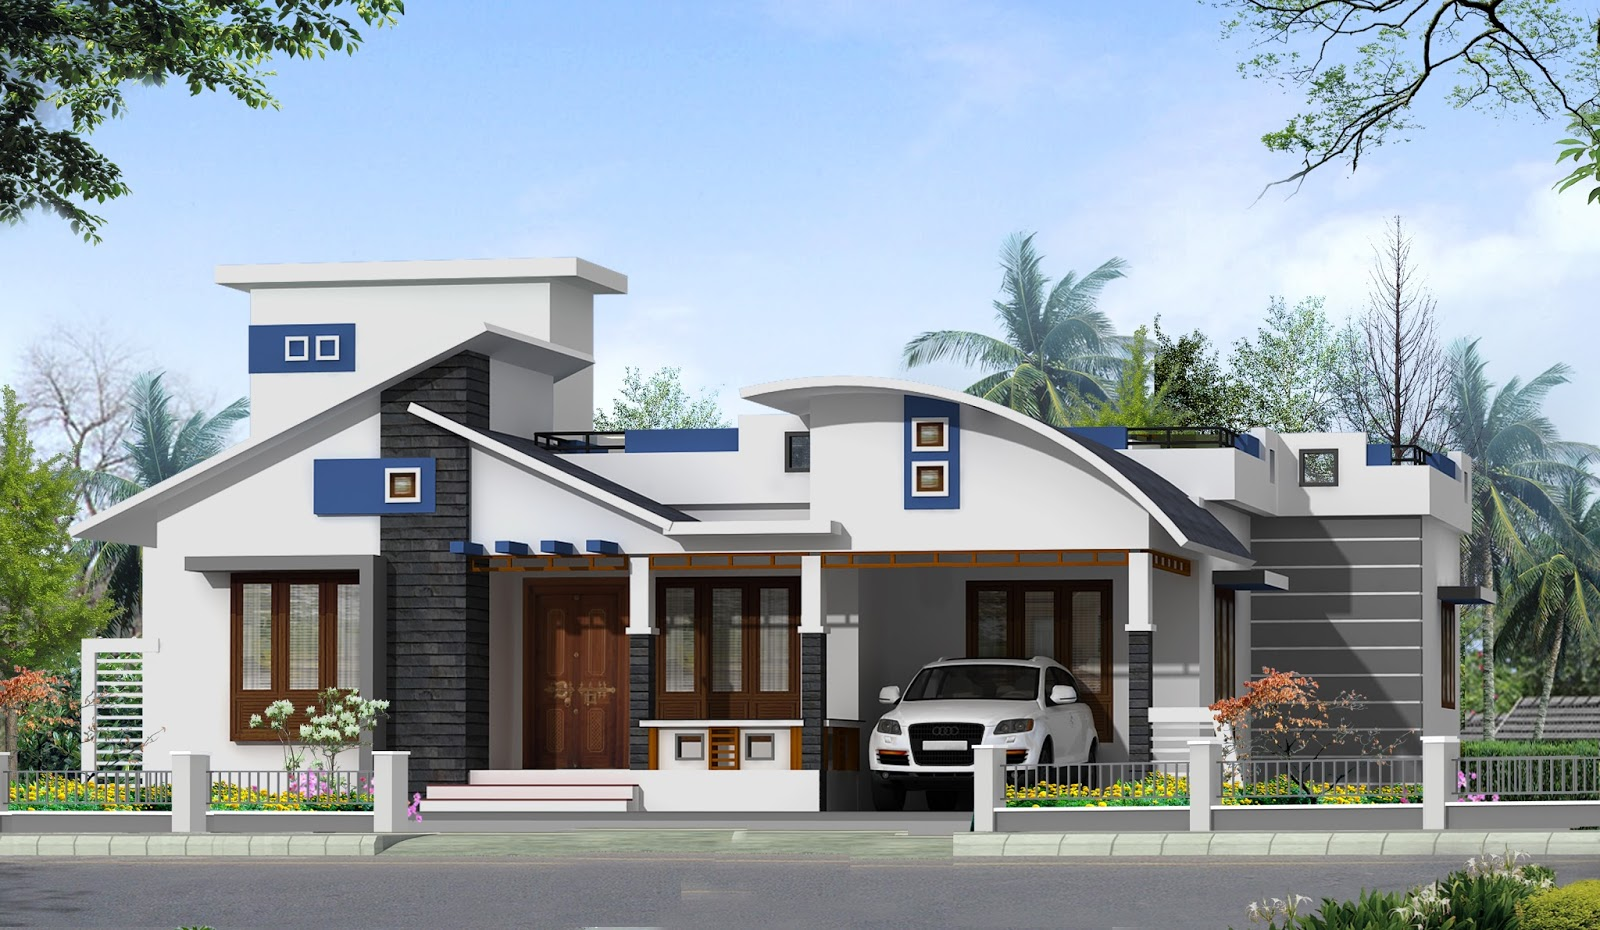 House designs modern house design series mhd 2015016 pinoy eplans modern small house plans simple modern house plan designs